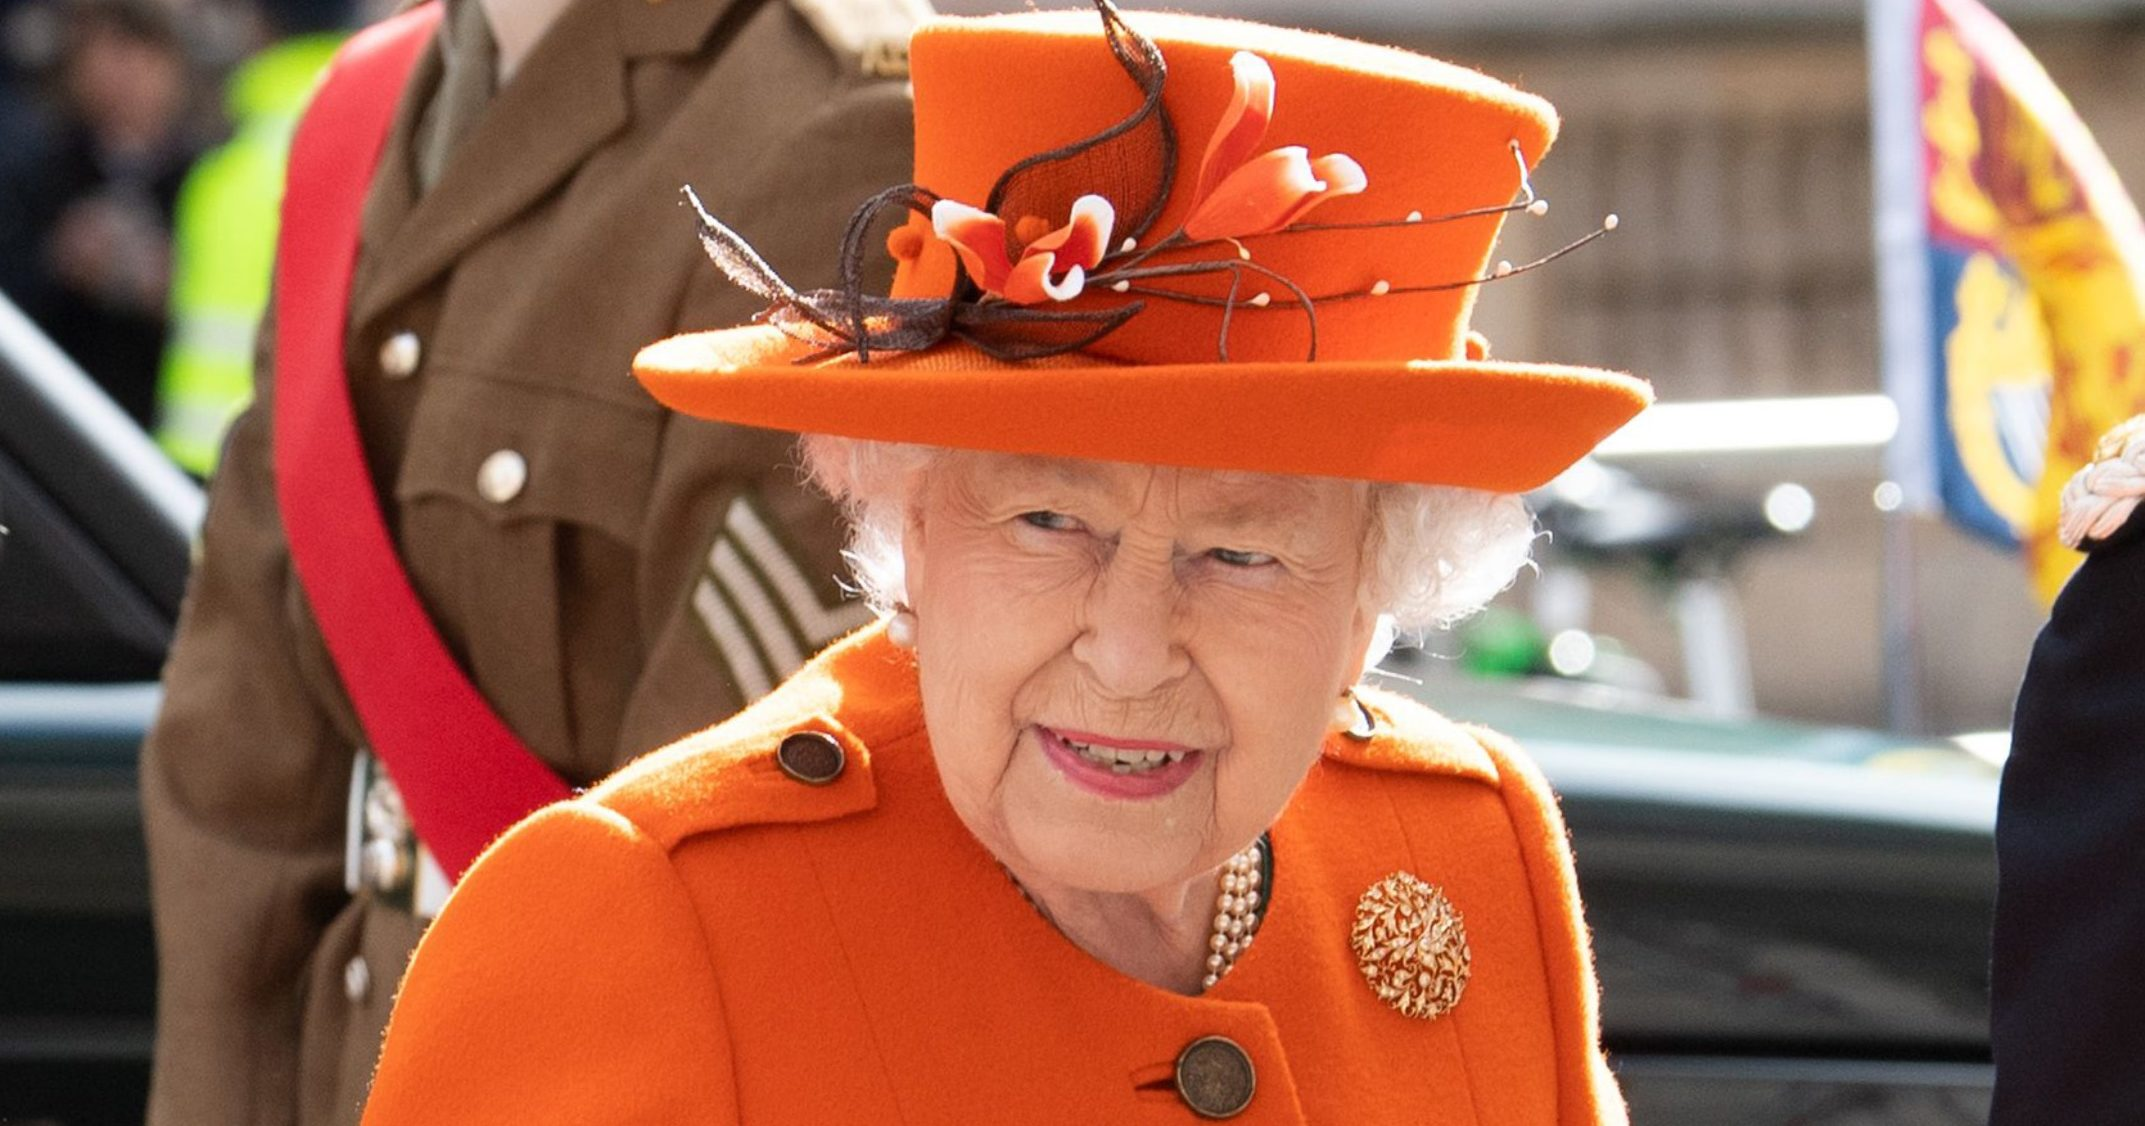 Royal Family shares videos of the Queen to mark 94th birthday